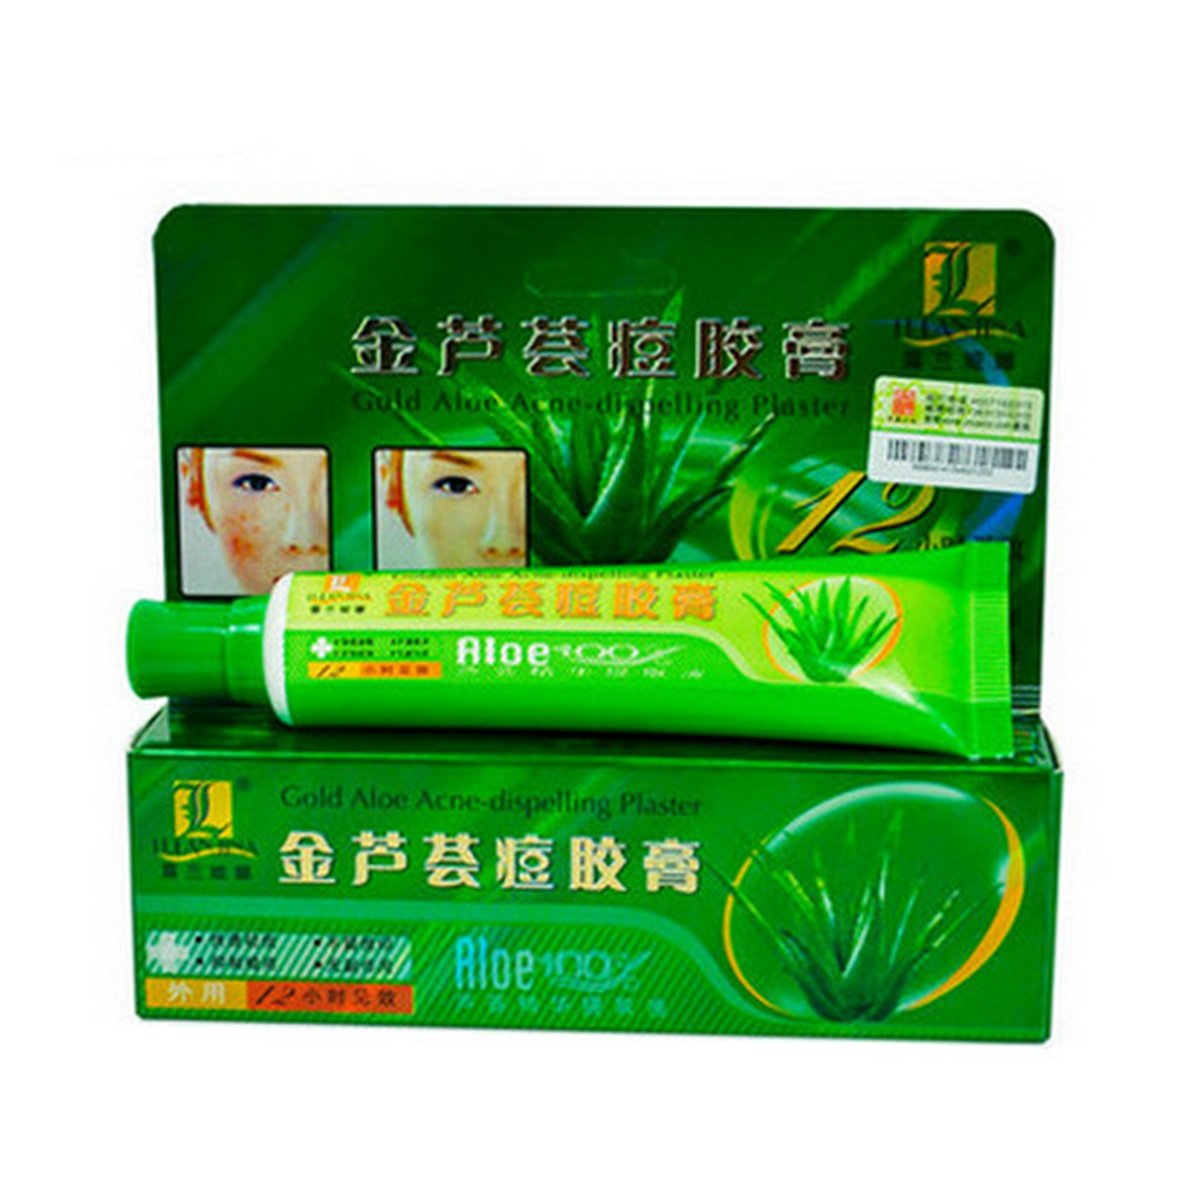 ROLANJONA Aloe Acne Scar Removal Cream Anti-acne Ointment Anti Dark Sore Plaster